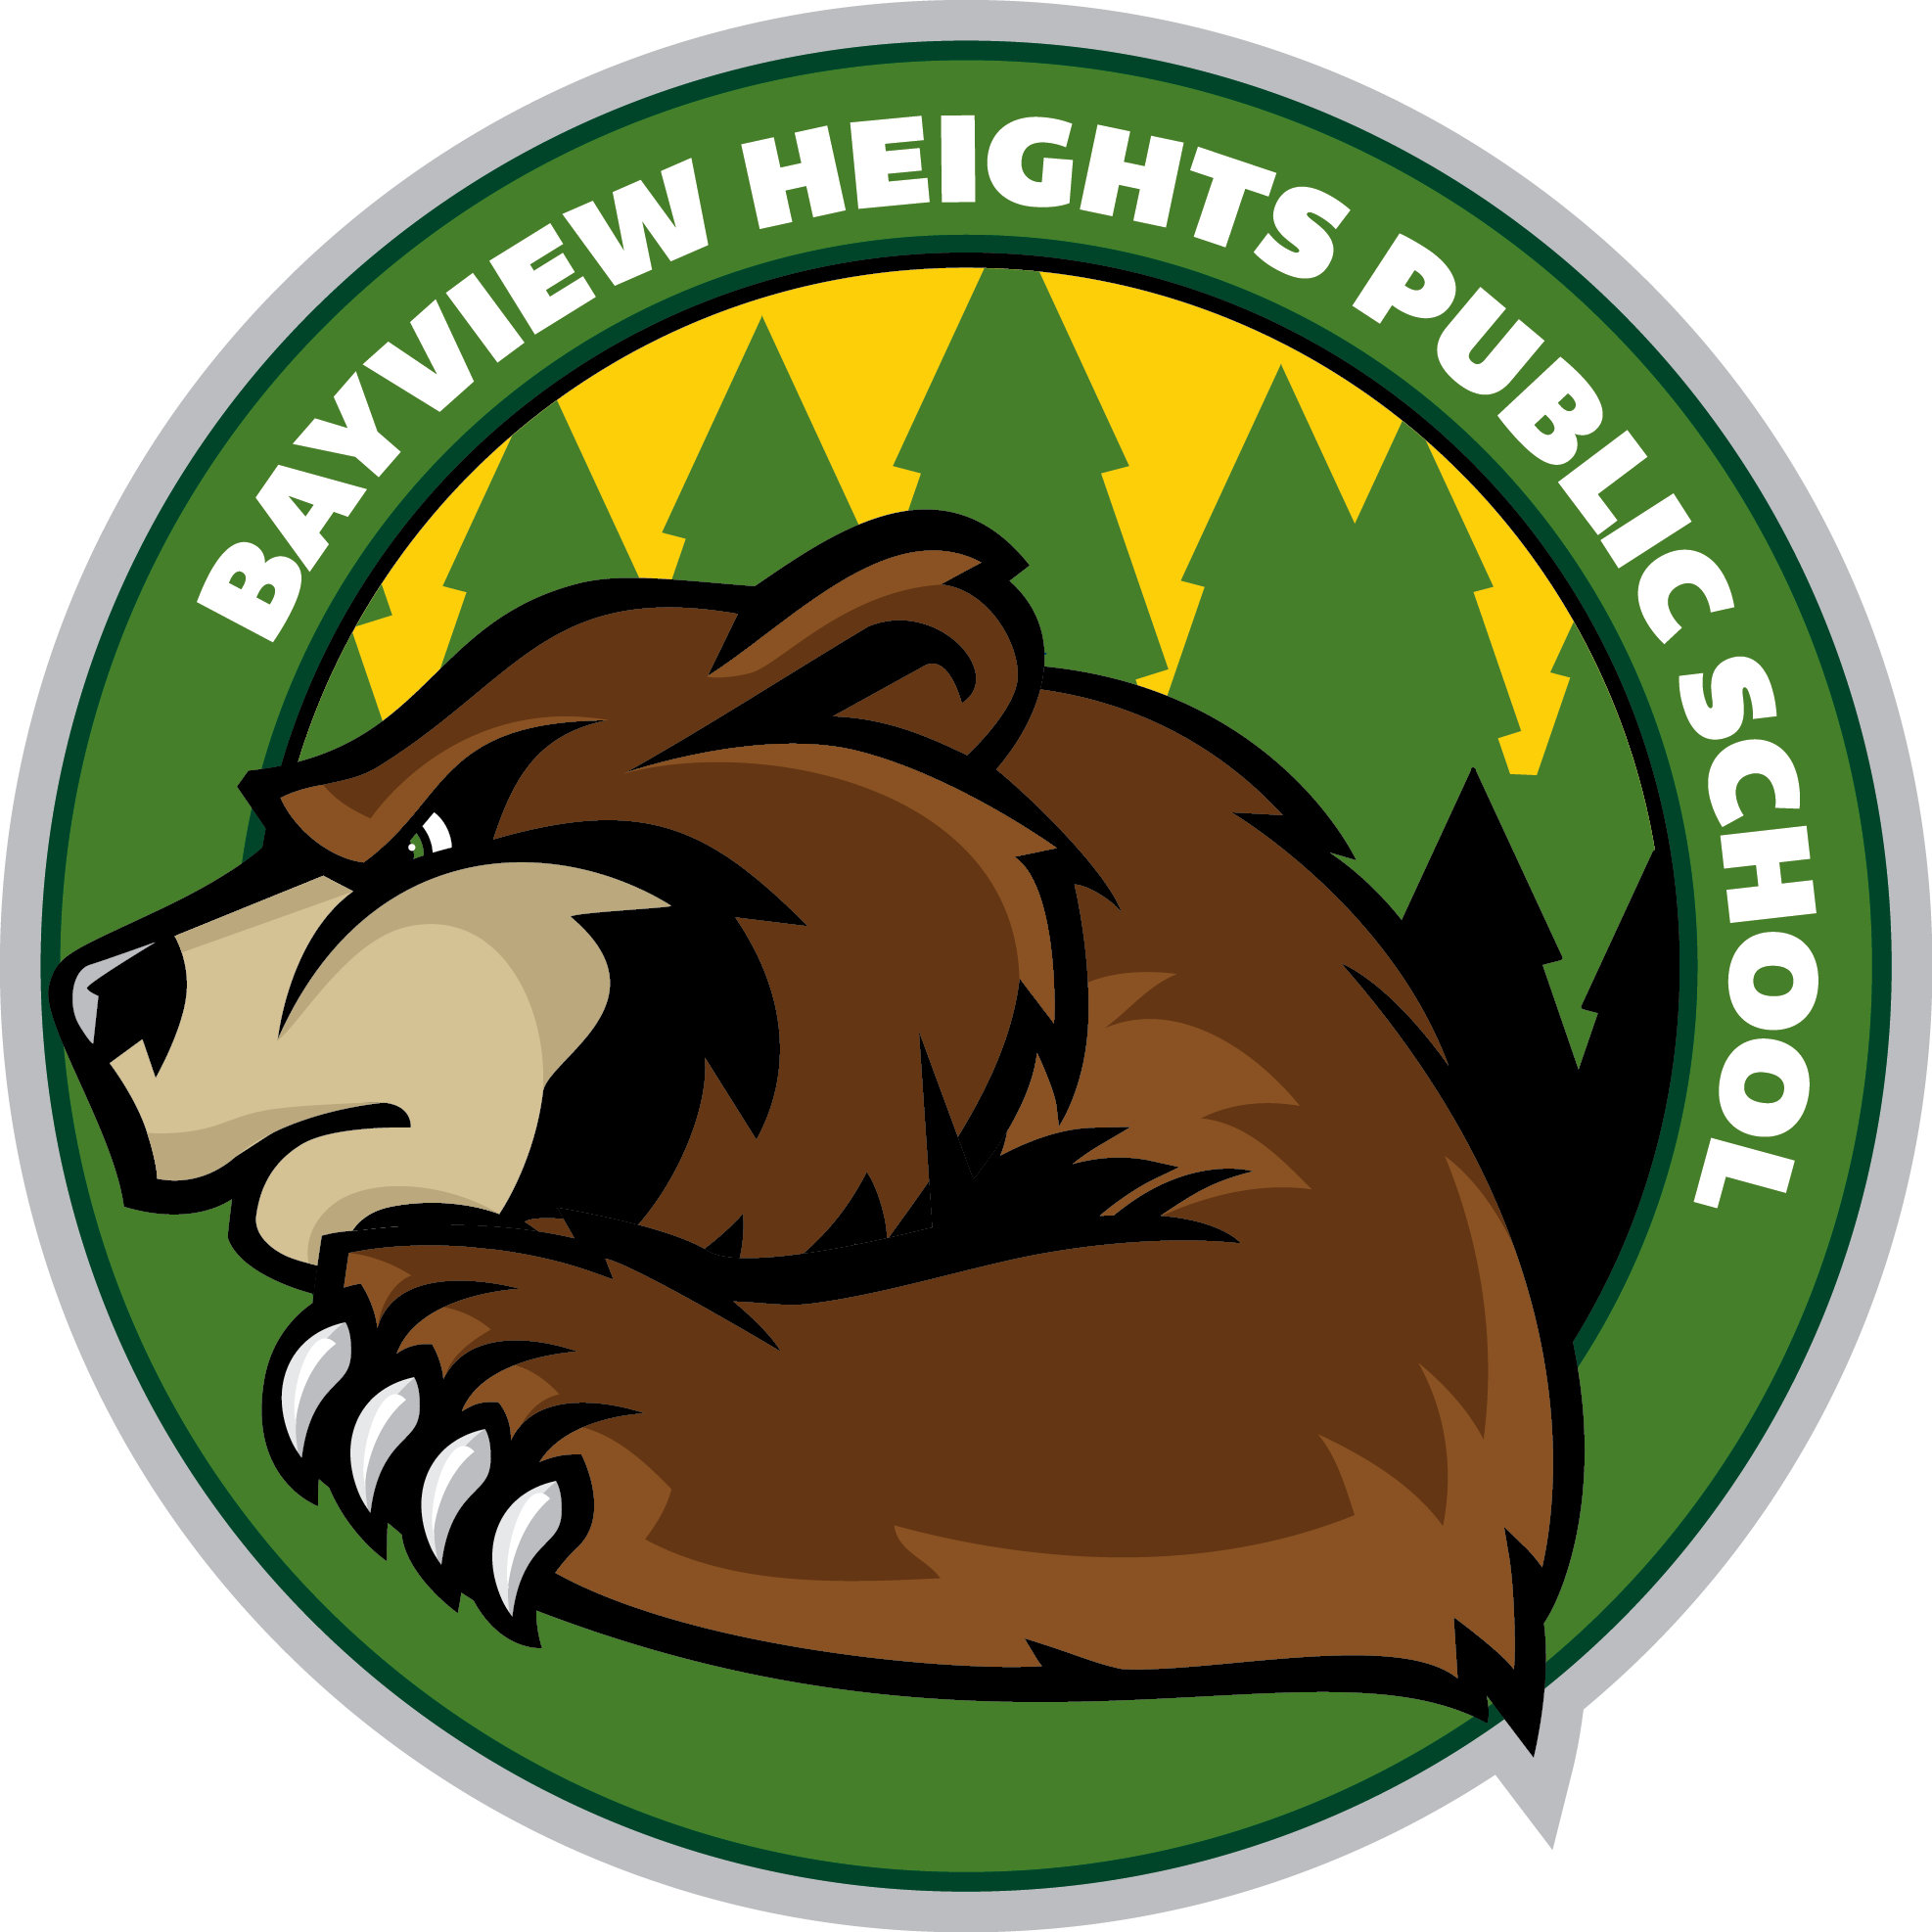 Bayview Heights Public School logo